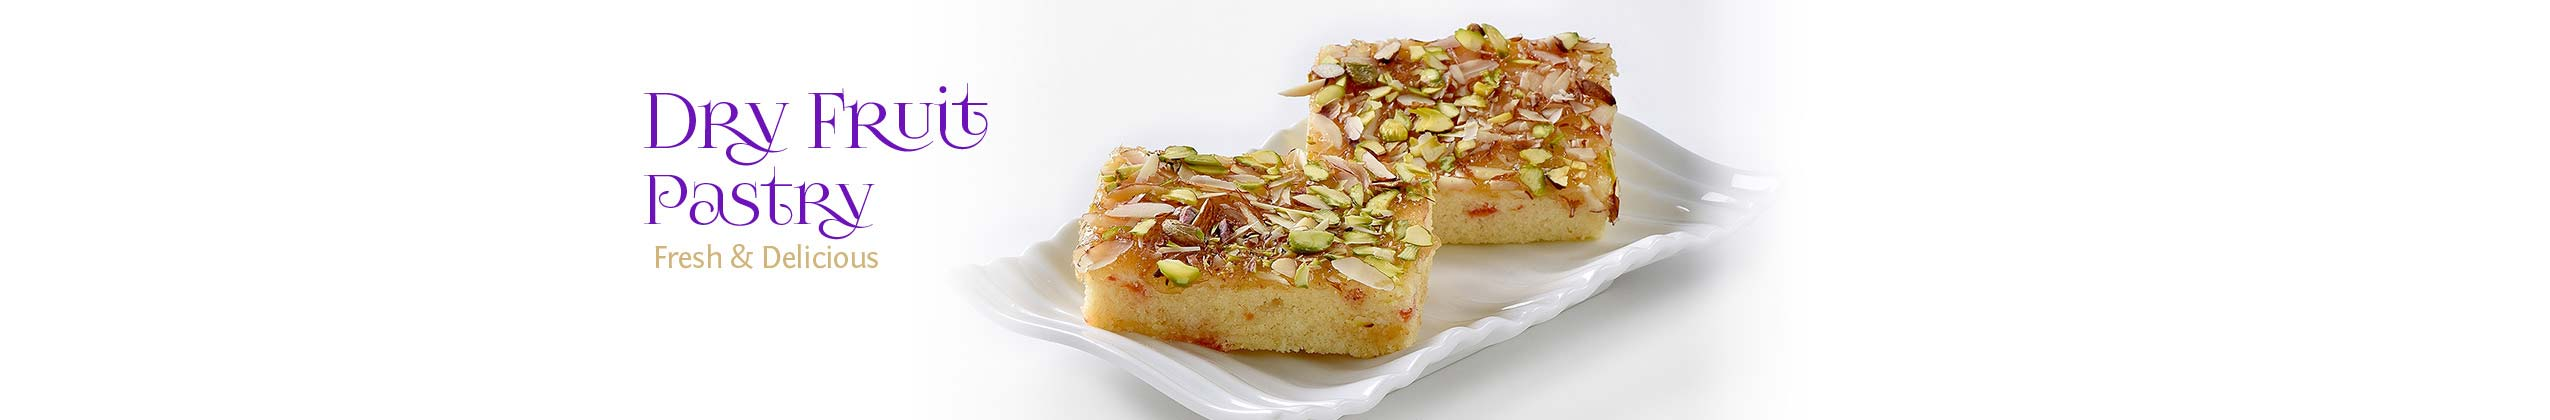 12-Dry-Fruit-Pastry-2